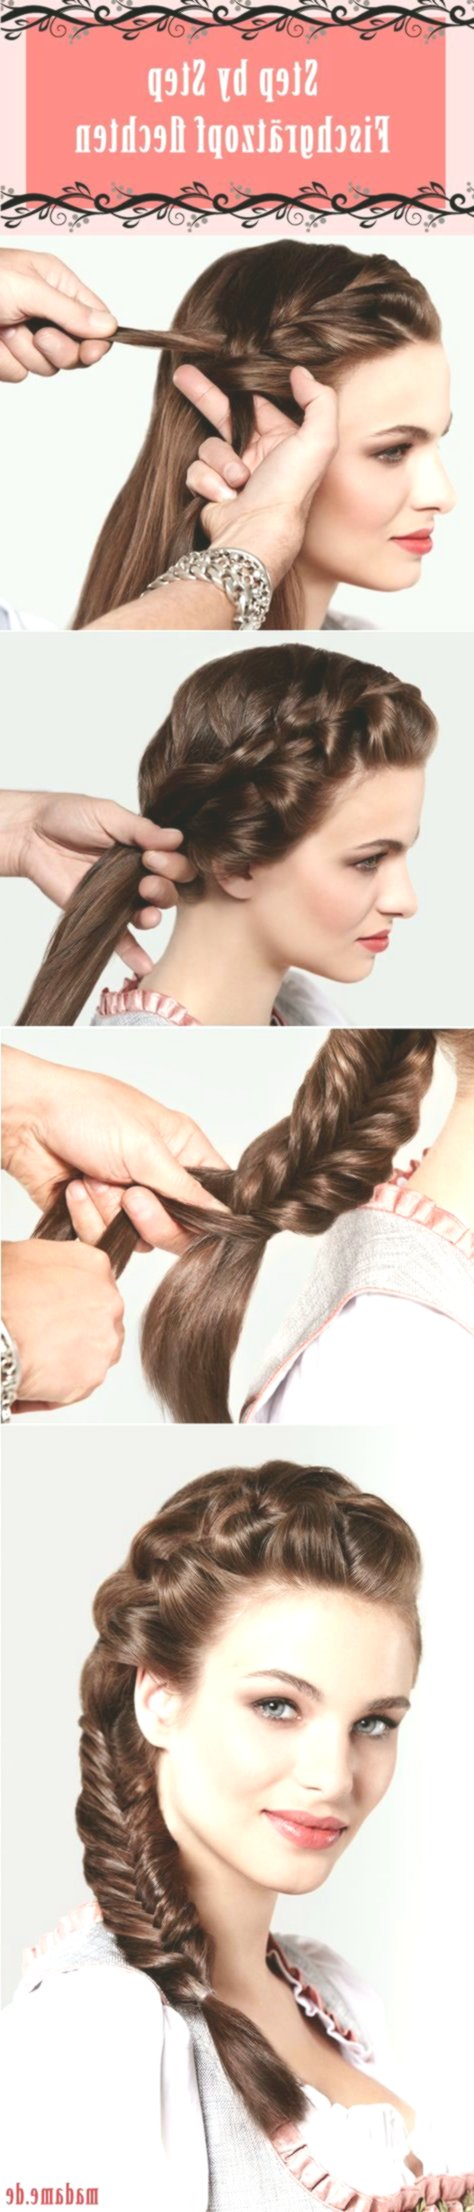 latest hairstyles for girls inspiration-Stylish Hairstyles For Girls Gallery